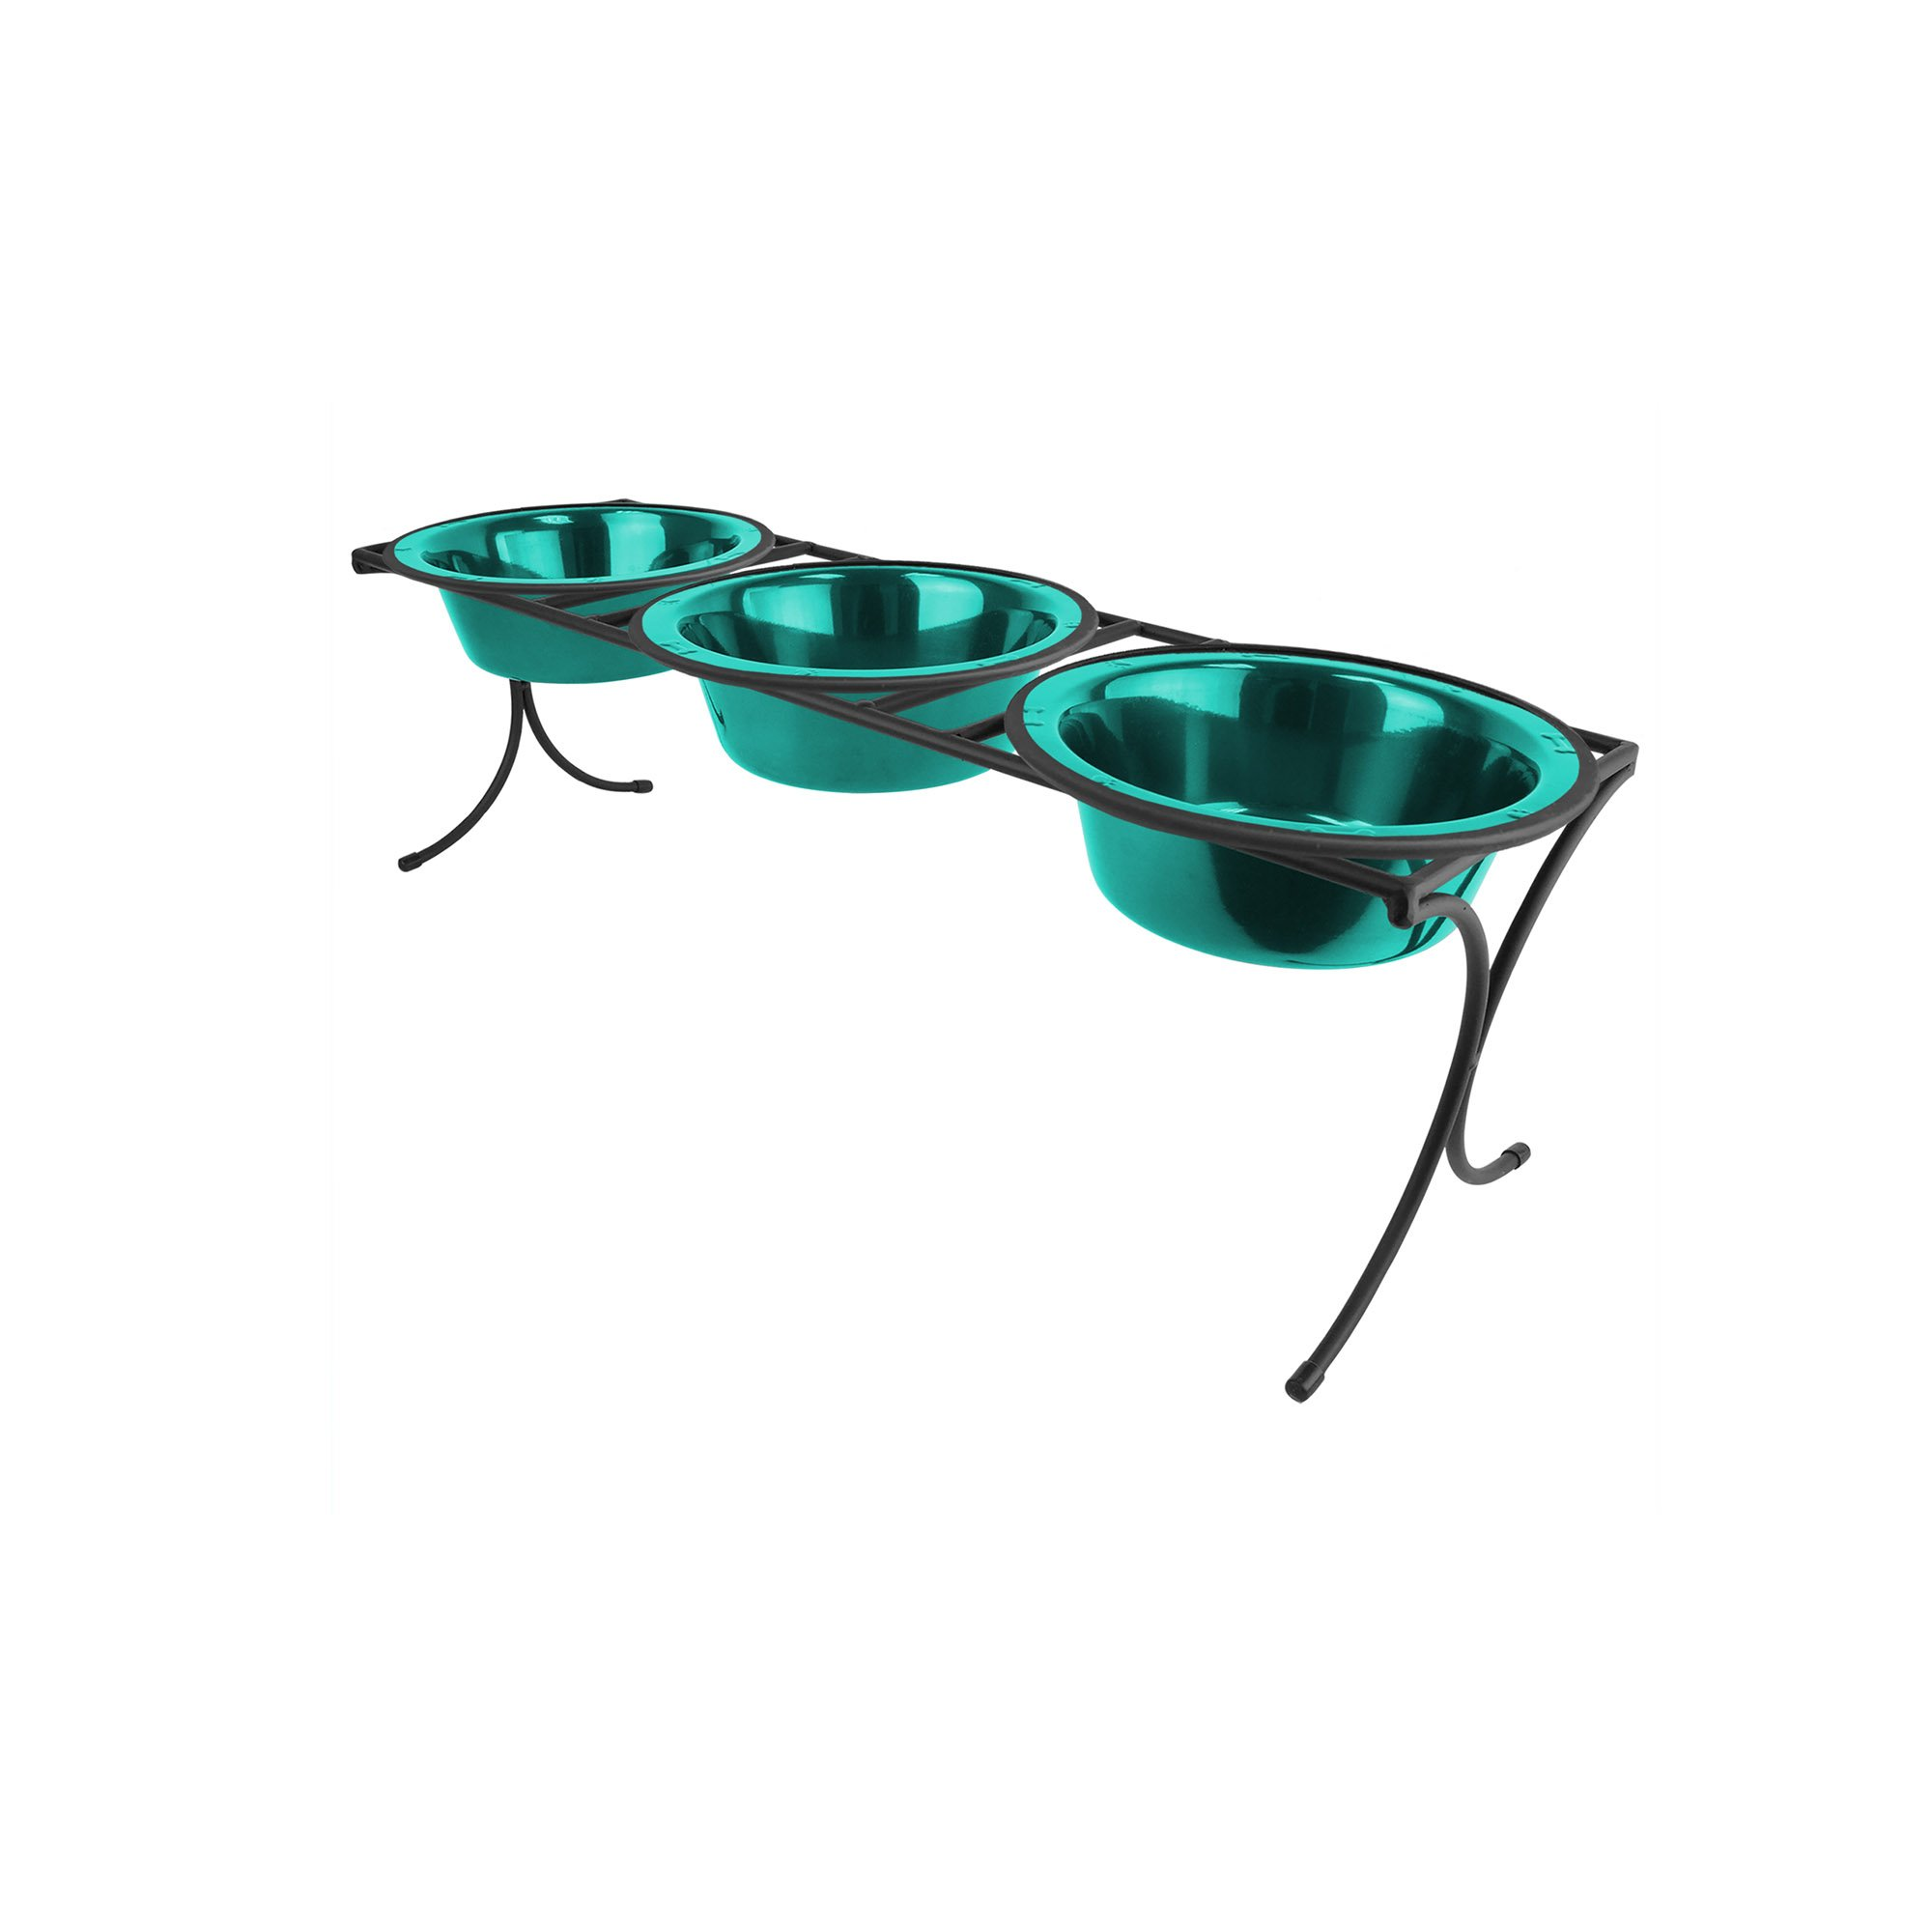 Platinum Pets 2 Cup Bistro Triple Raised Feeder with Stainless Steel Wide Rimmed Bowls, Caribbean Teal